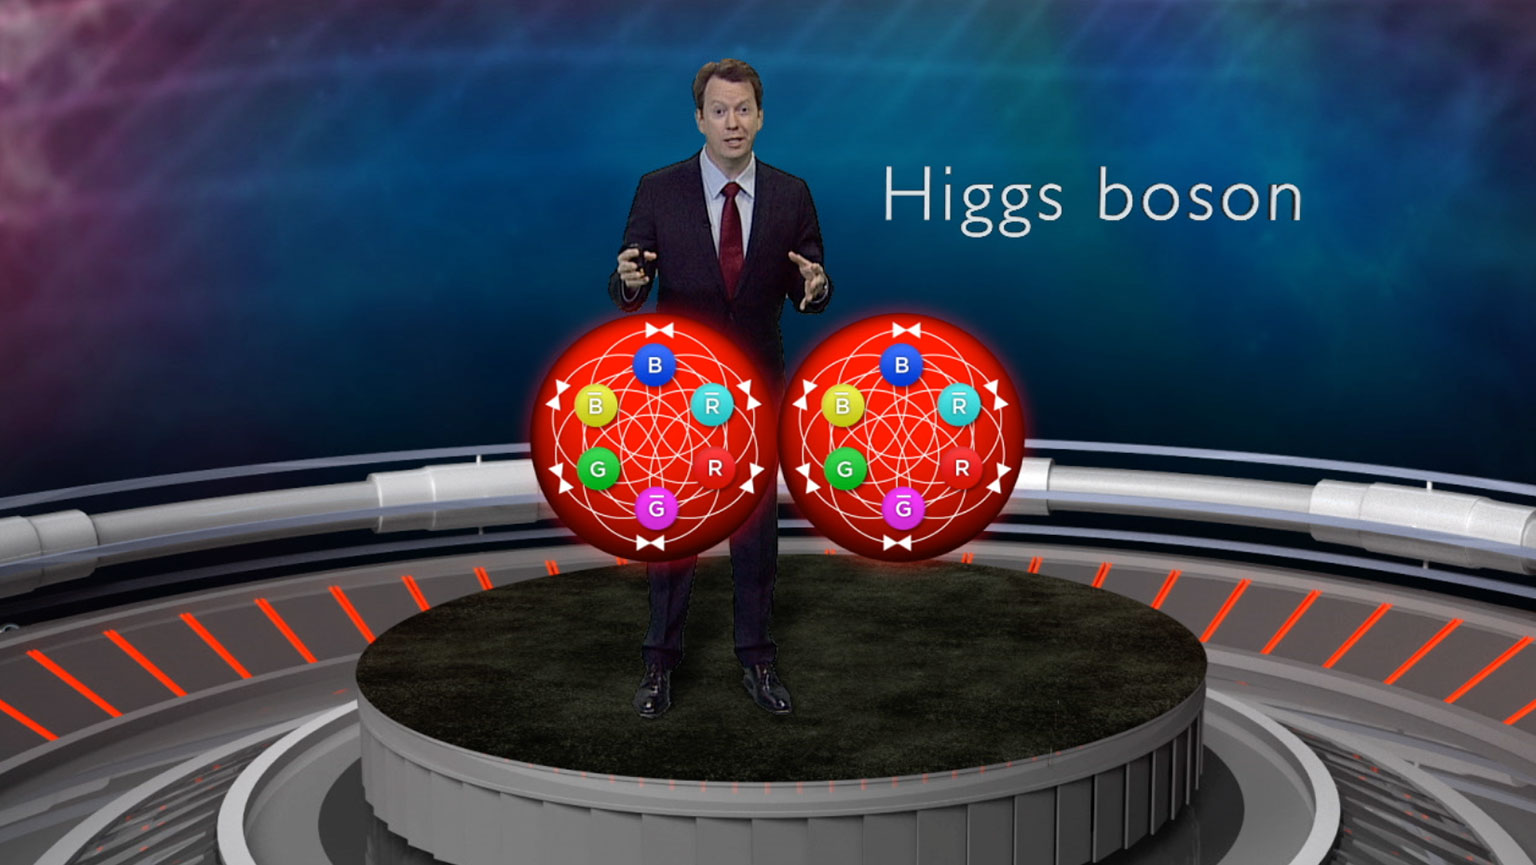 Capturing the Higgs Boson